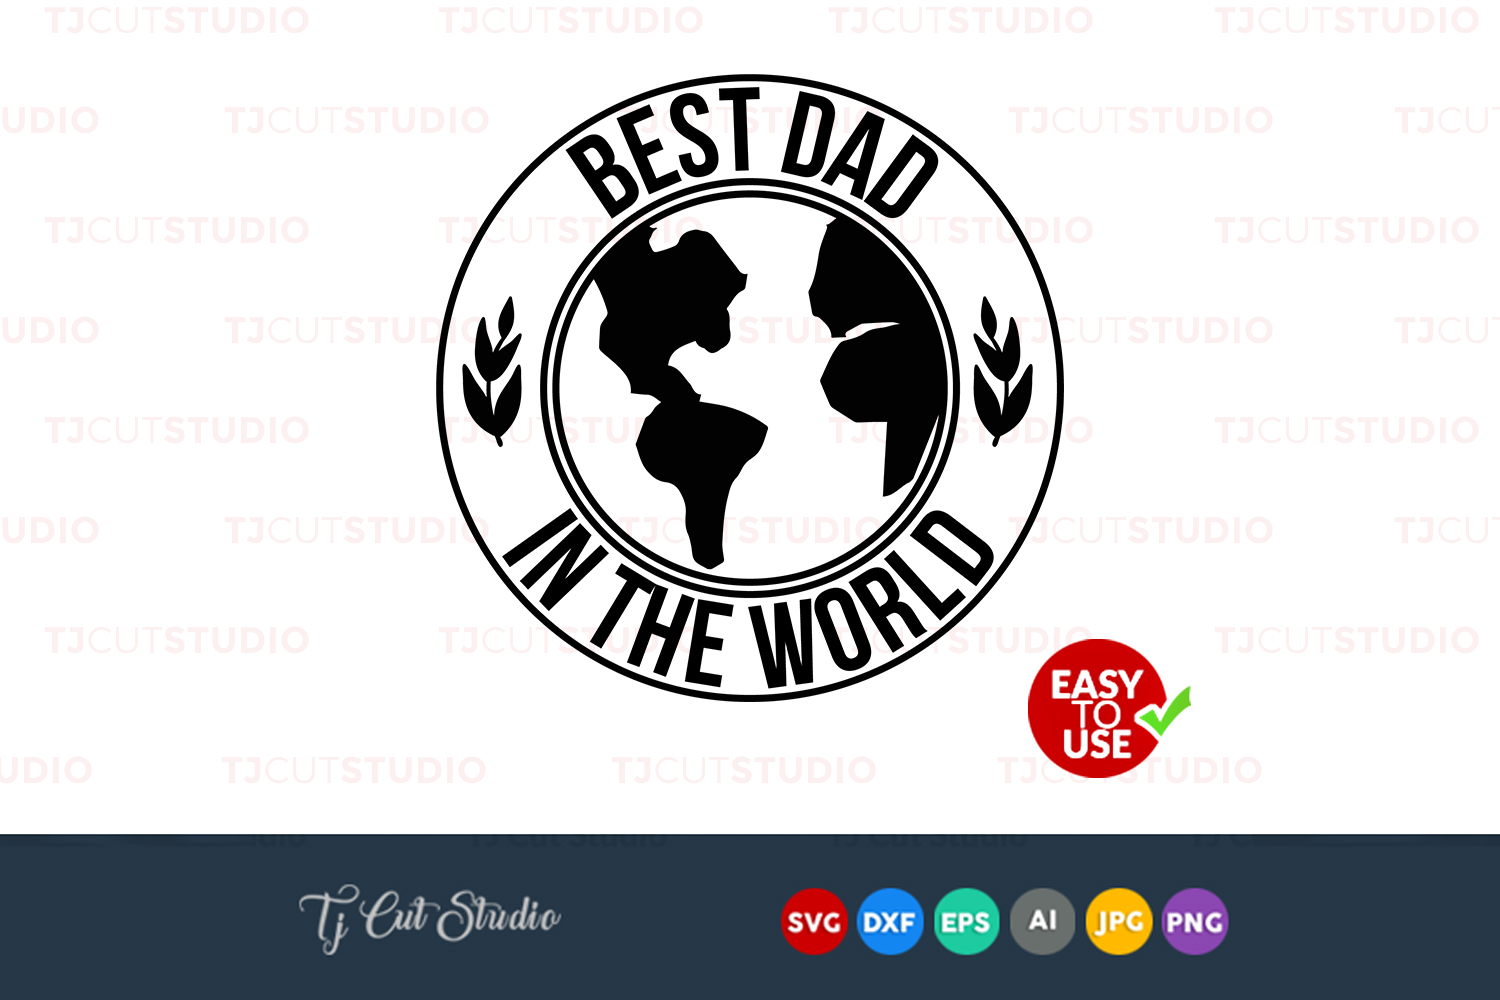 Best dad in the world, Fathers day svg, quote svg, Files for Silhouette Cameo or Cricut, Commercial & Personal Use. example image 1